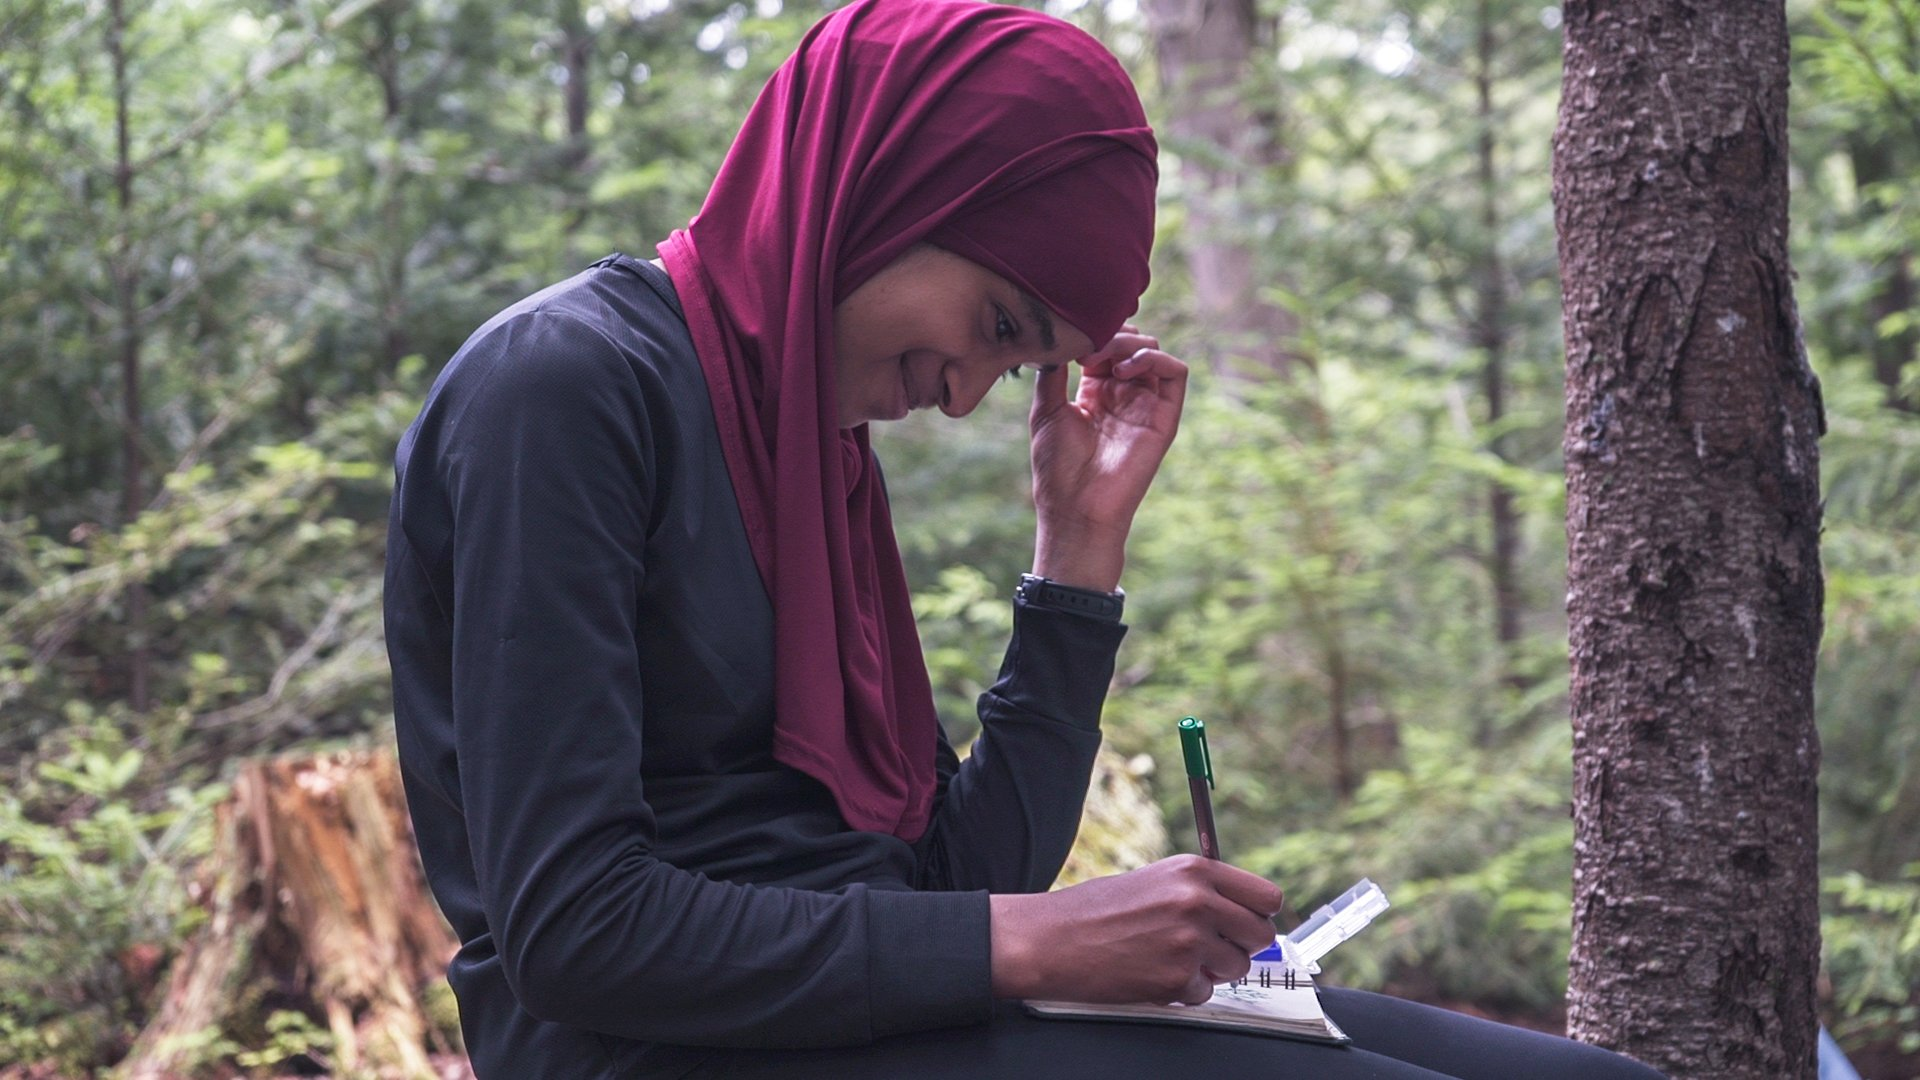 A student smiles while writing in the Adirondacks